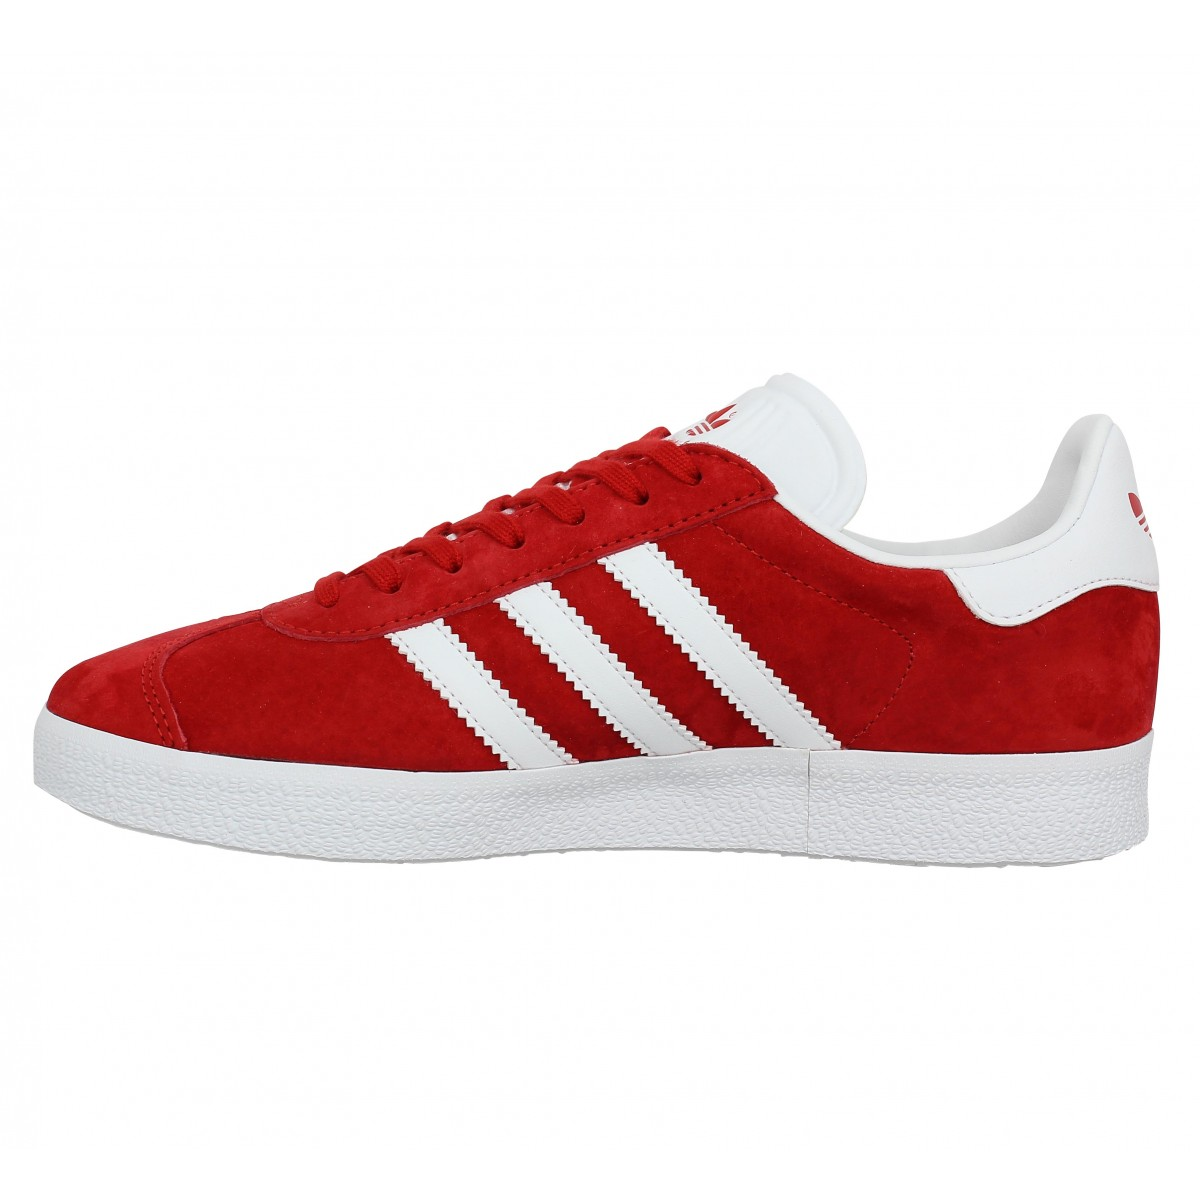 Baskets ADIDAS Gazelle Rouge. 1